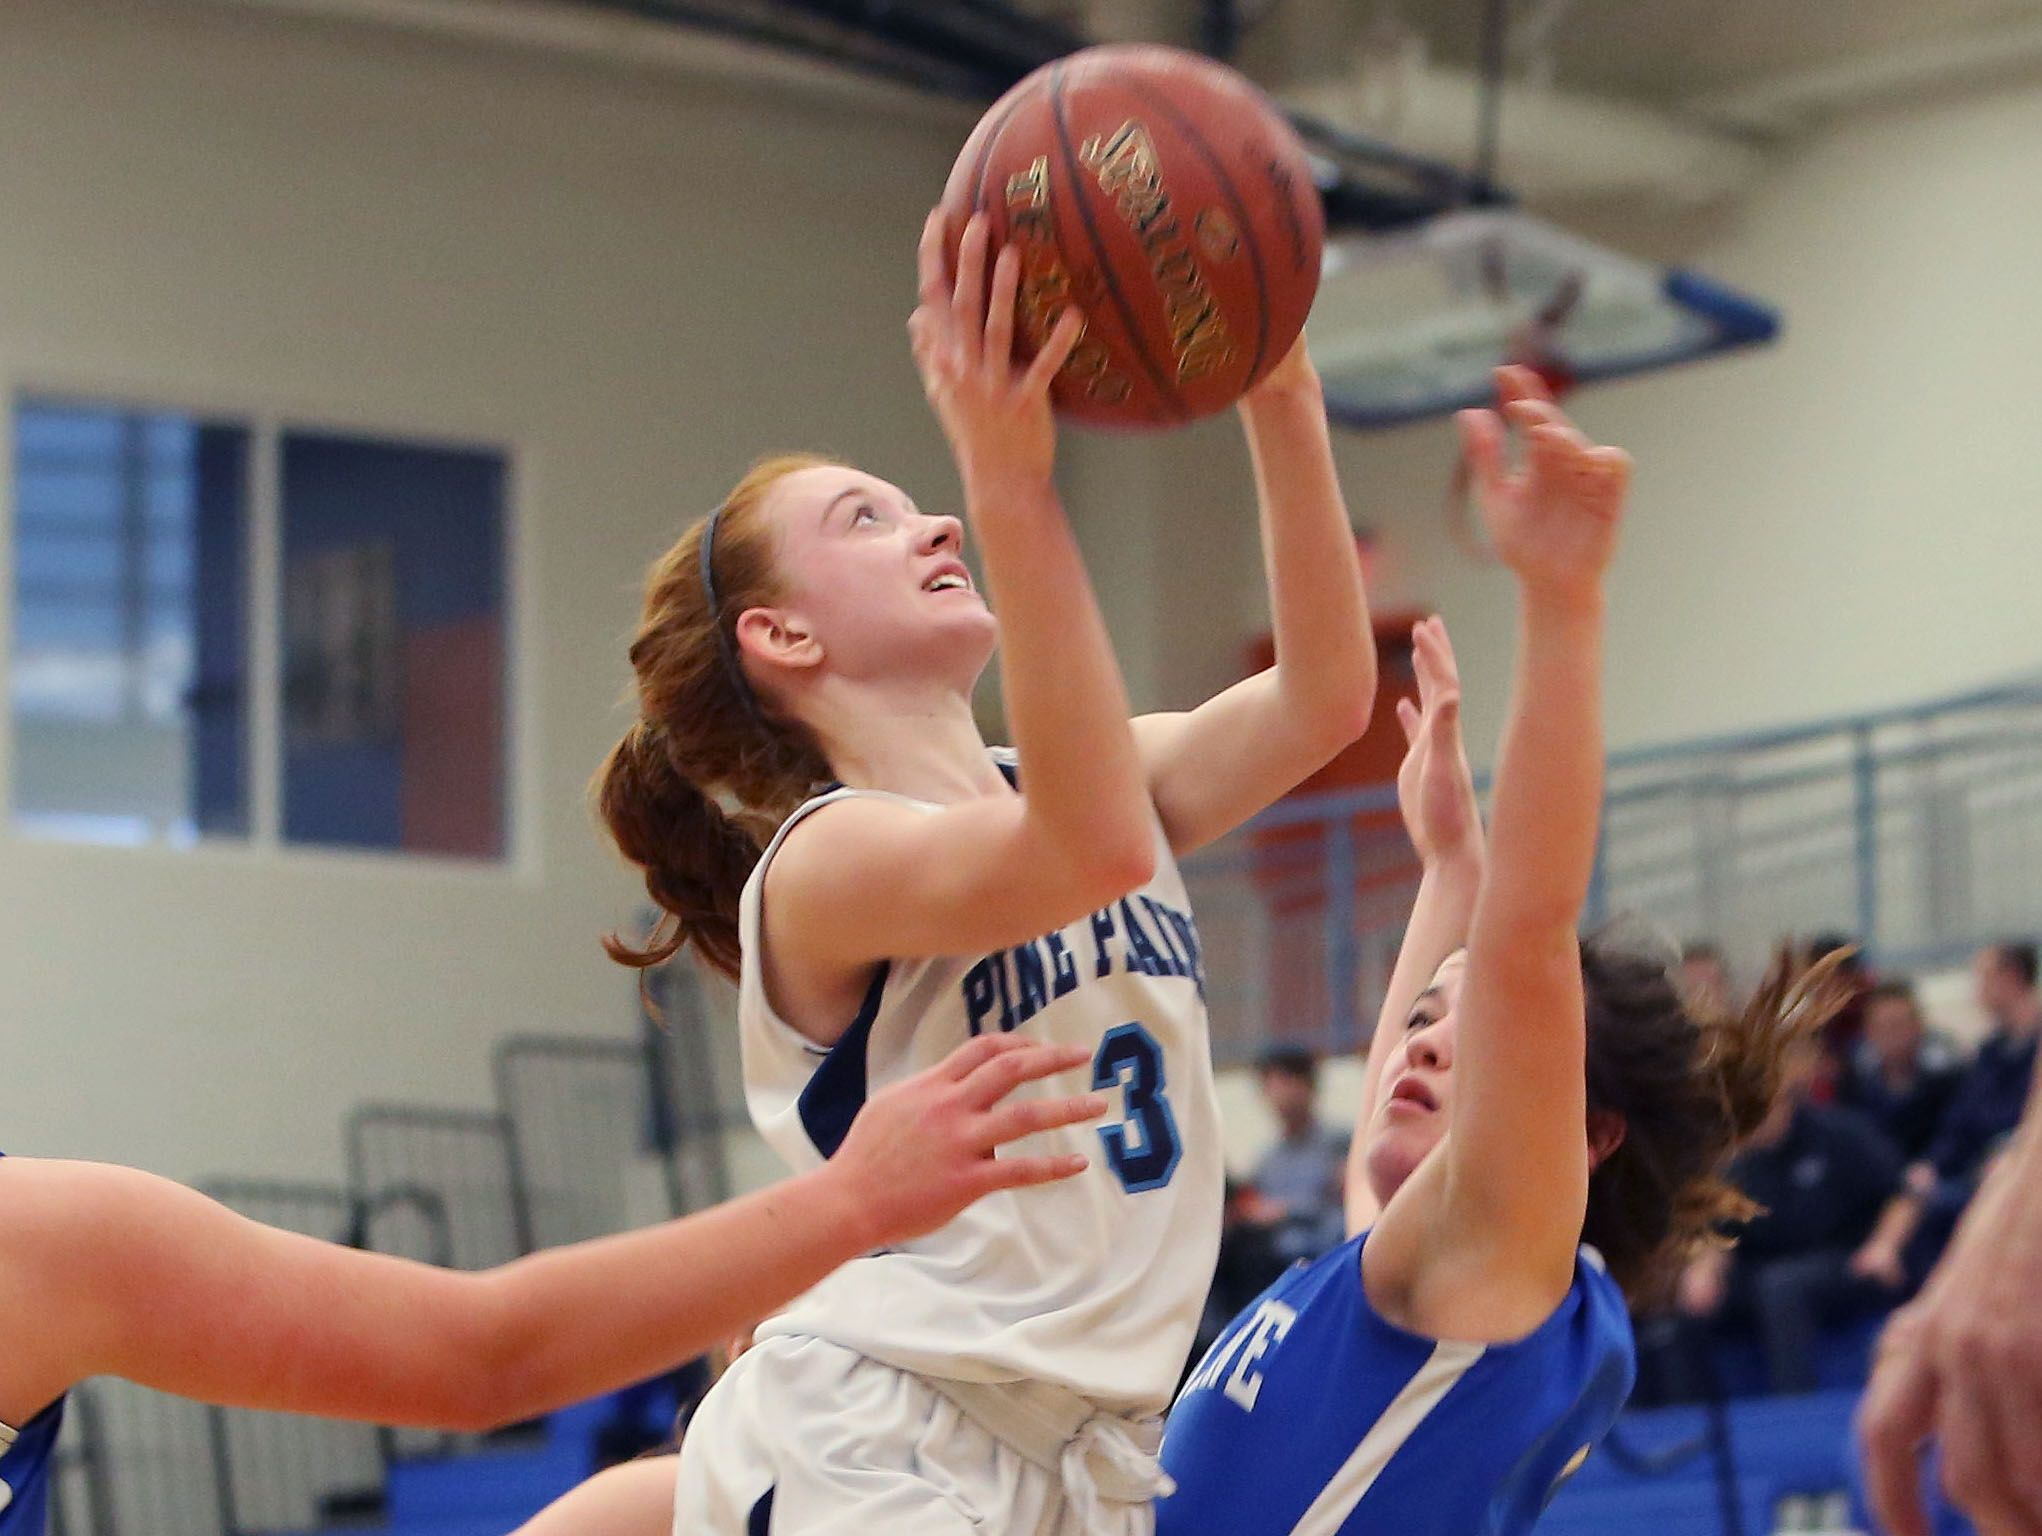 From left, Pine Plains' Frances Snyder (3) drives to the basket in front of Haldane's Hannah Monteleone (3) during the state regional semifinal at SUNY New Paltz March 7, 2017.